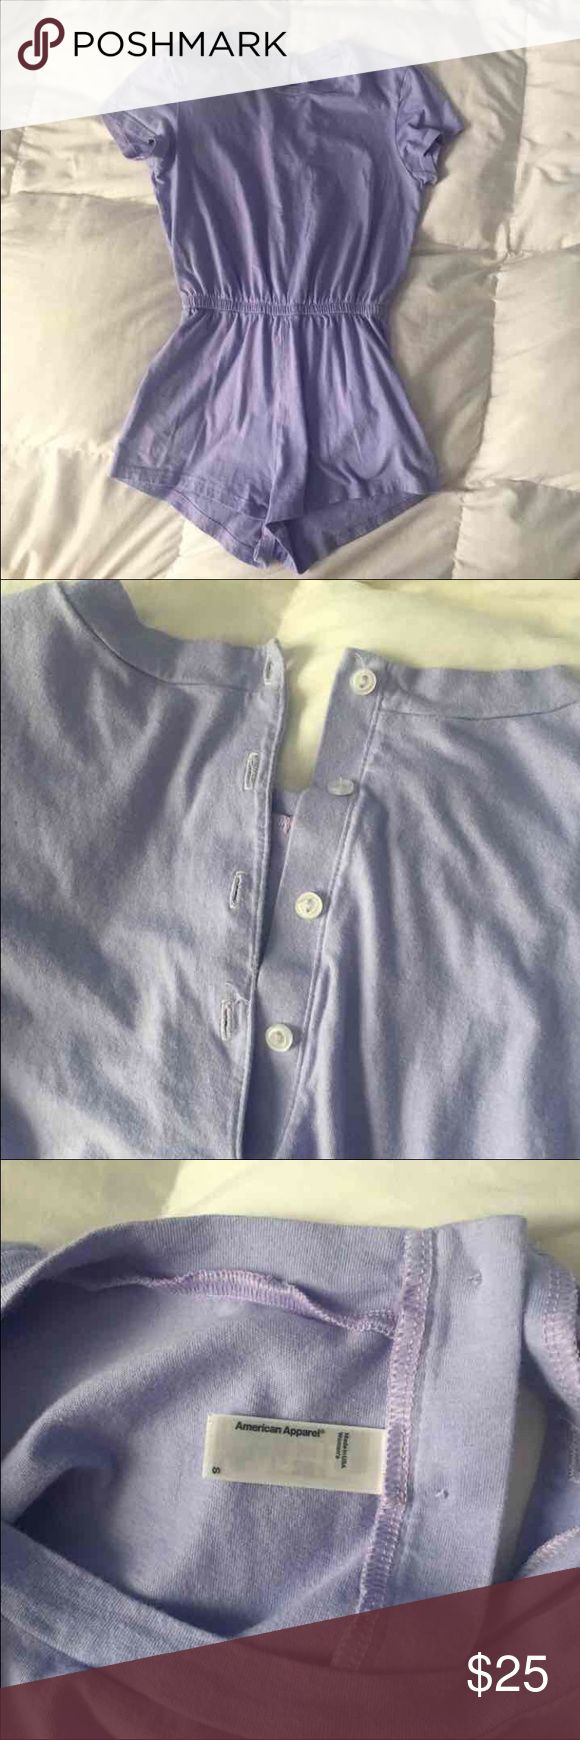 American Apparel Jersey T-Shirt Romper worn twice and in great condition ! i'm 5'4 with a 32 in bust, 26 in waist, and 37 in hips and this romper is just too small on me. pastel colors are discontinued. American Apparel Other